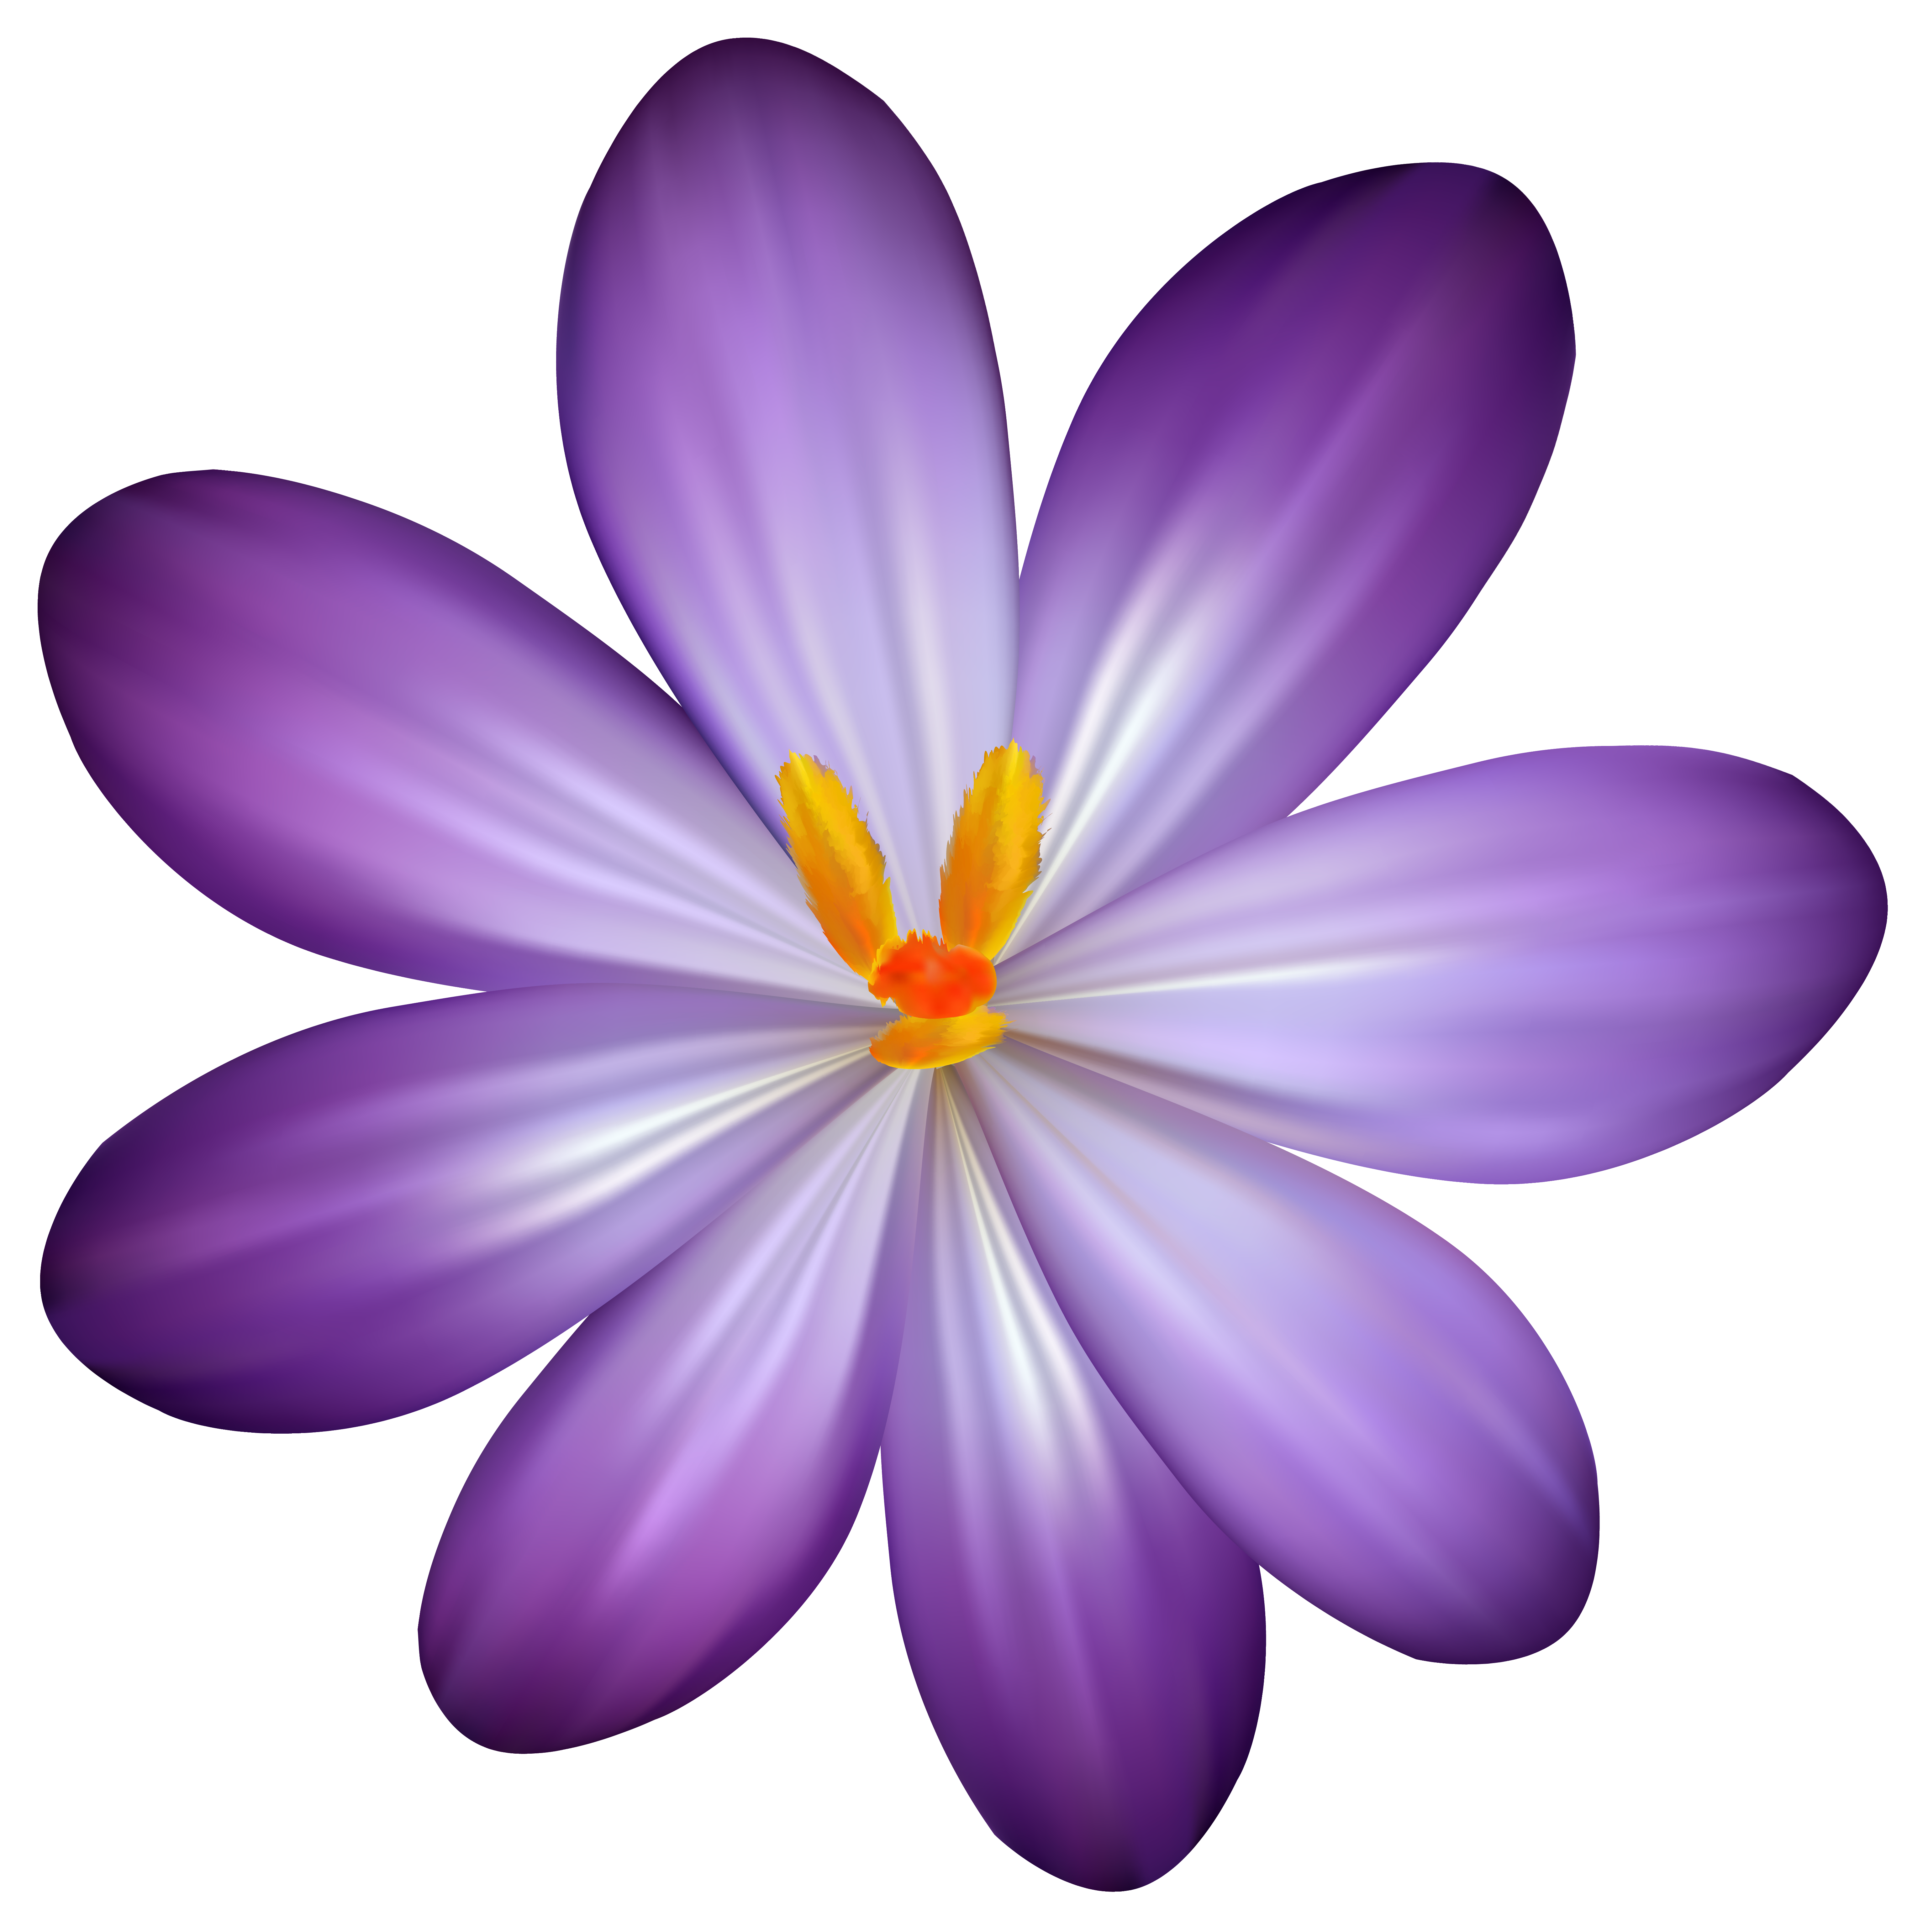 Flower Clipart Png - Purple Crocus Flower PNG Clipart Image   Gallery Yopriceville ...